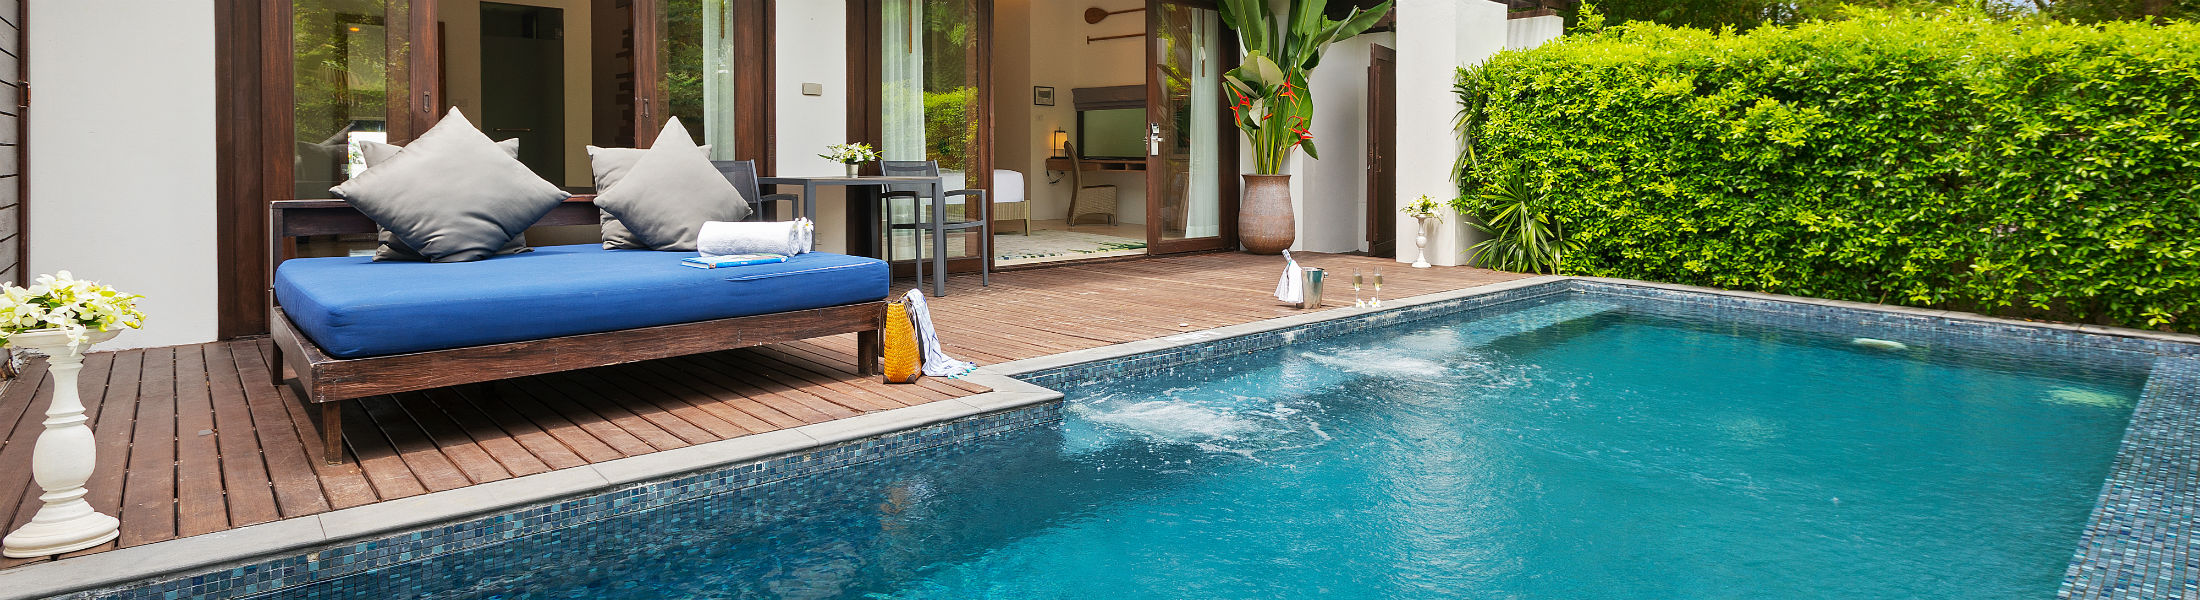 1 bedroom pool villa at the Outrigger koh samui beach resort